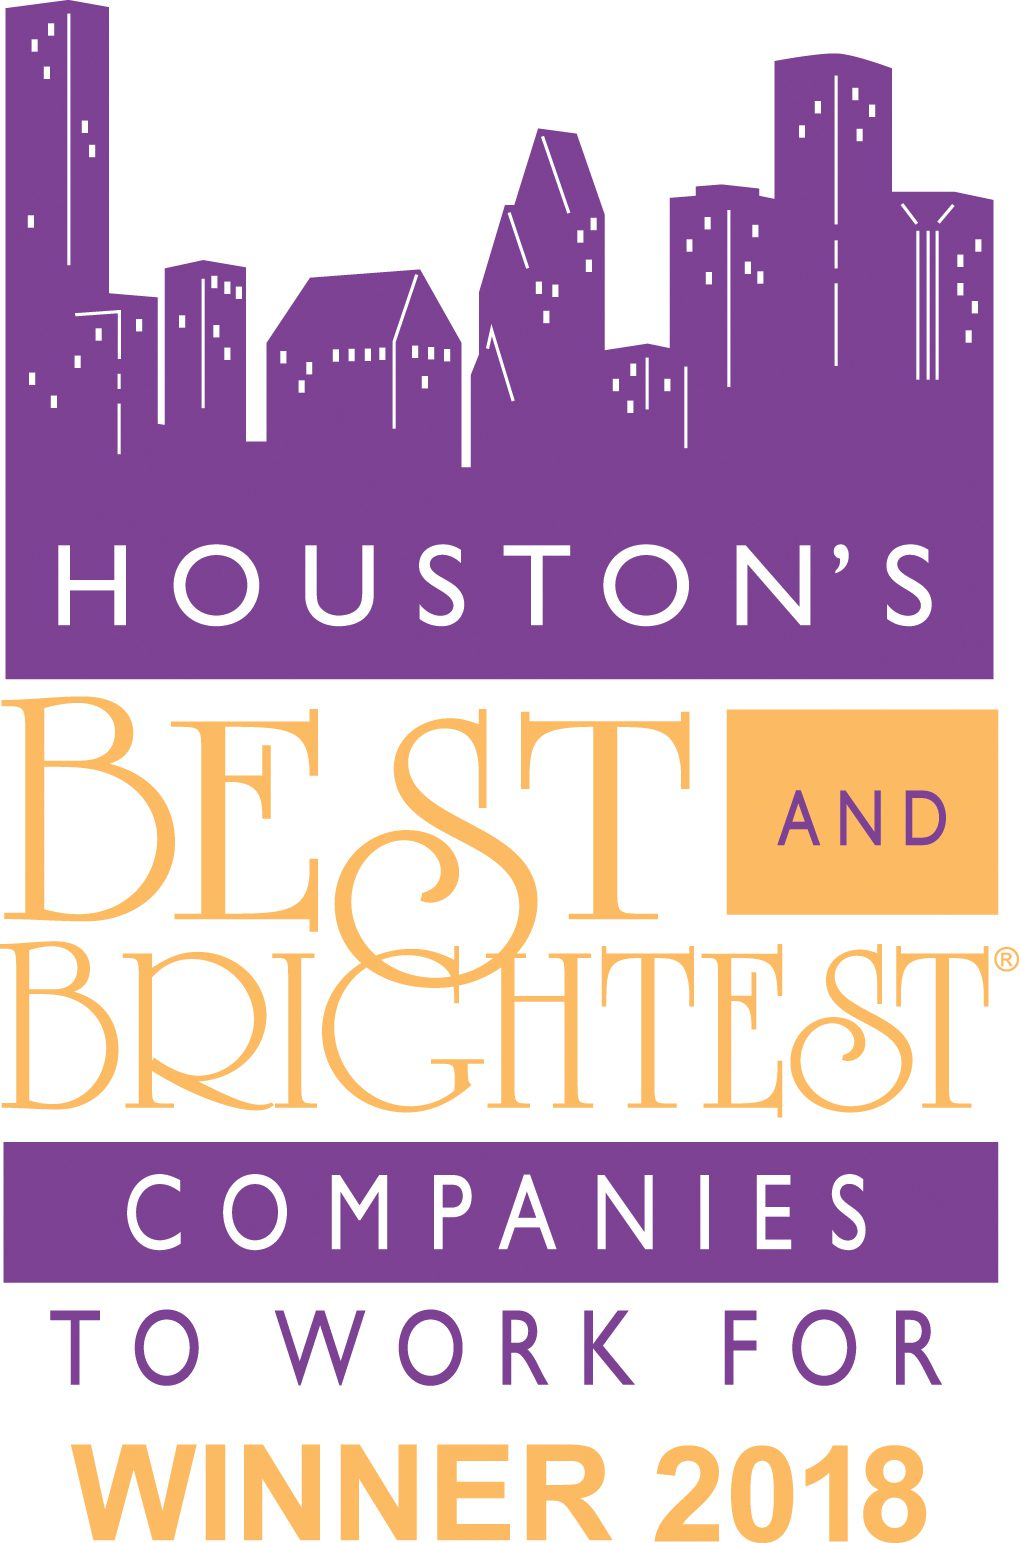 Sun Coast Resources, Inc. Named as One of Houston's Best And Brightest Companies To Work For